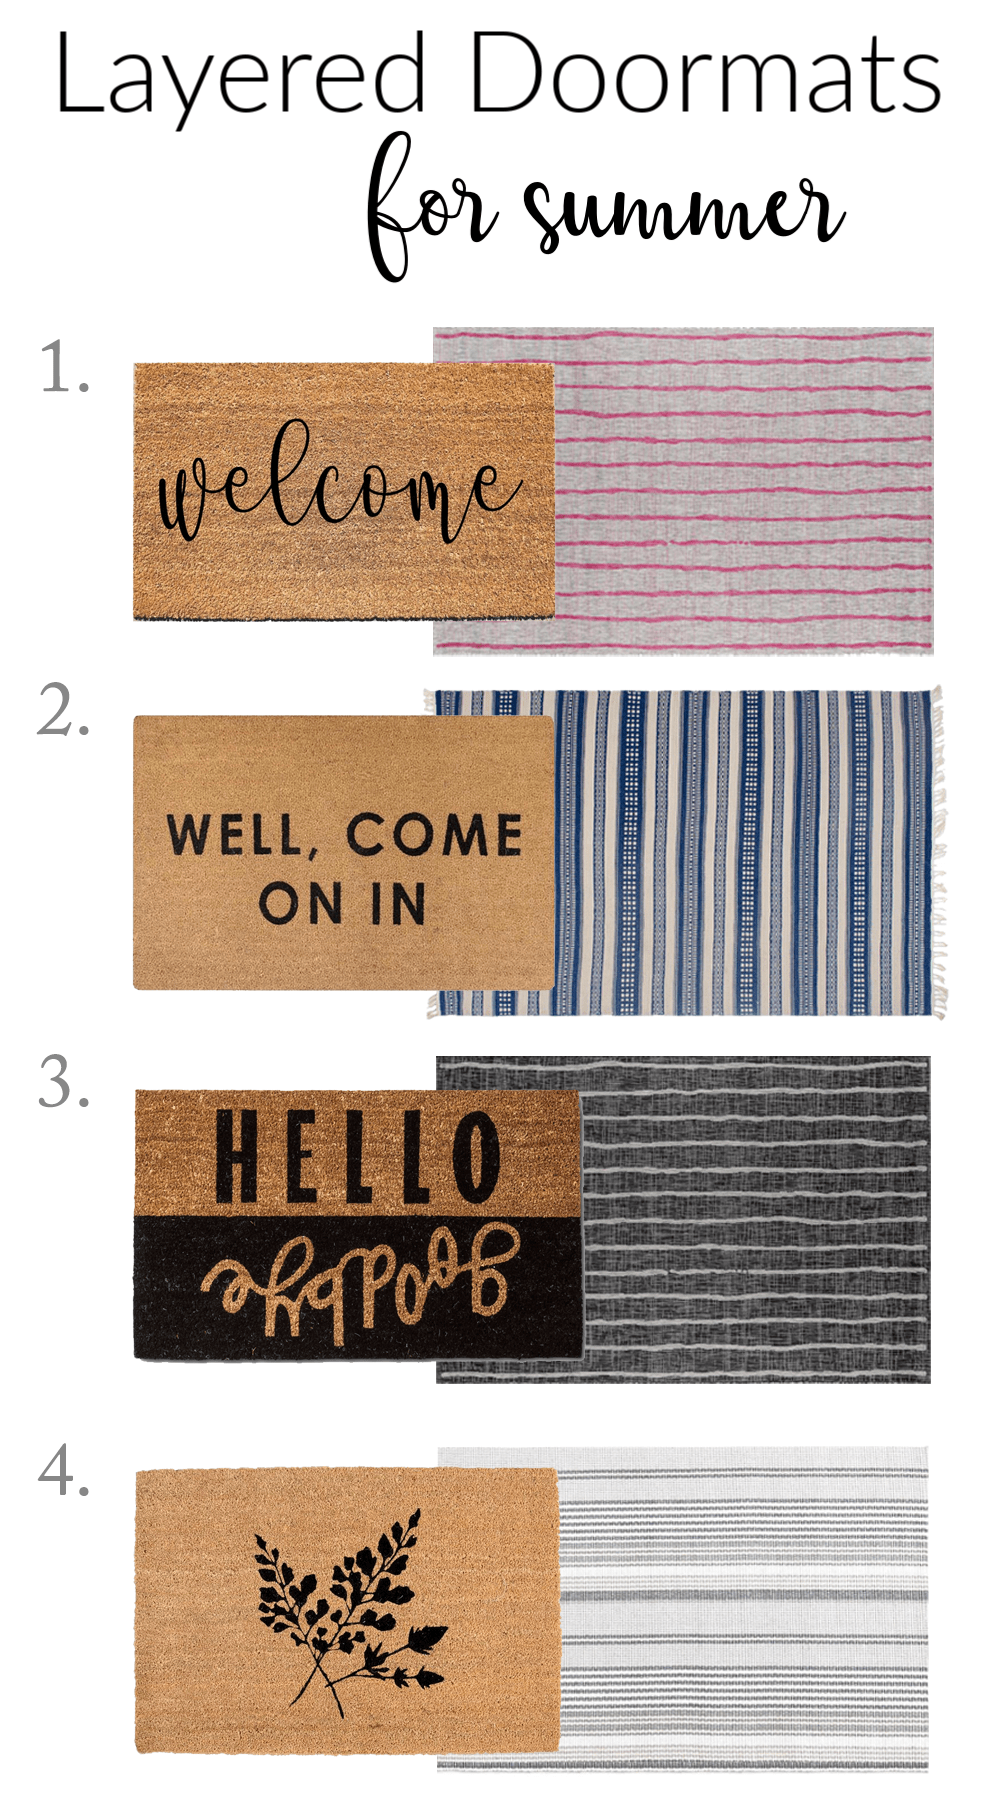 Layered Doormats for Summer - How to Mix and Match - Design